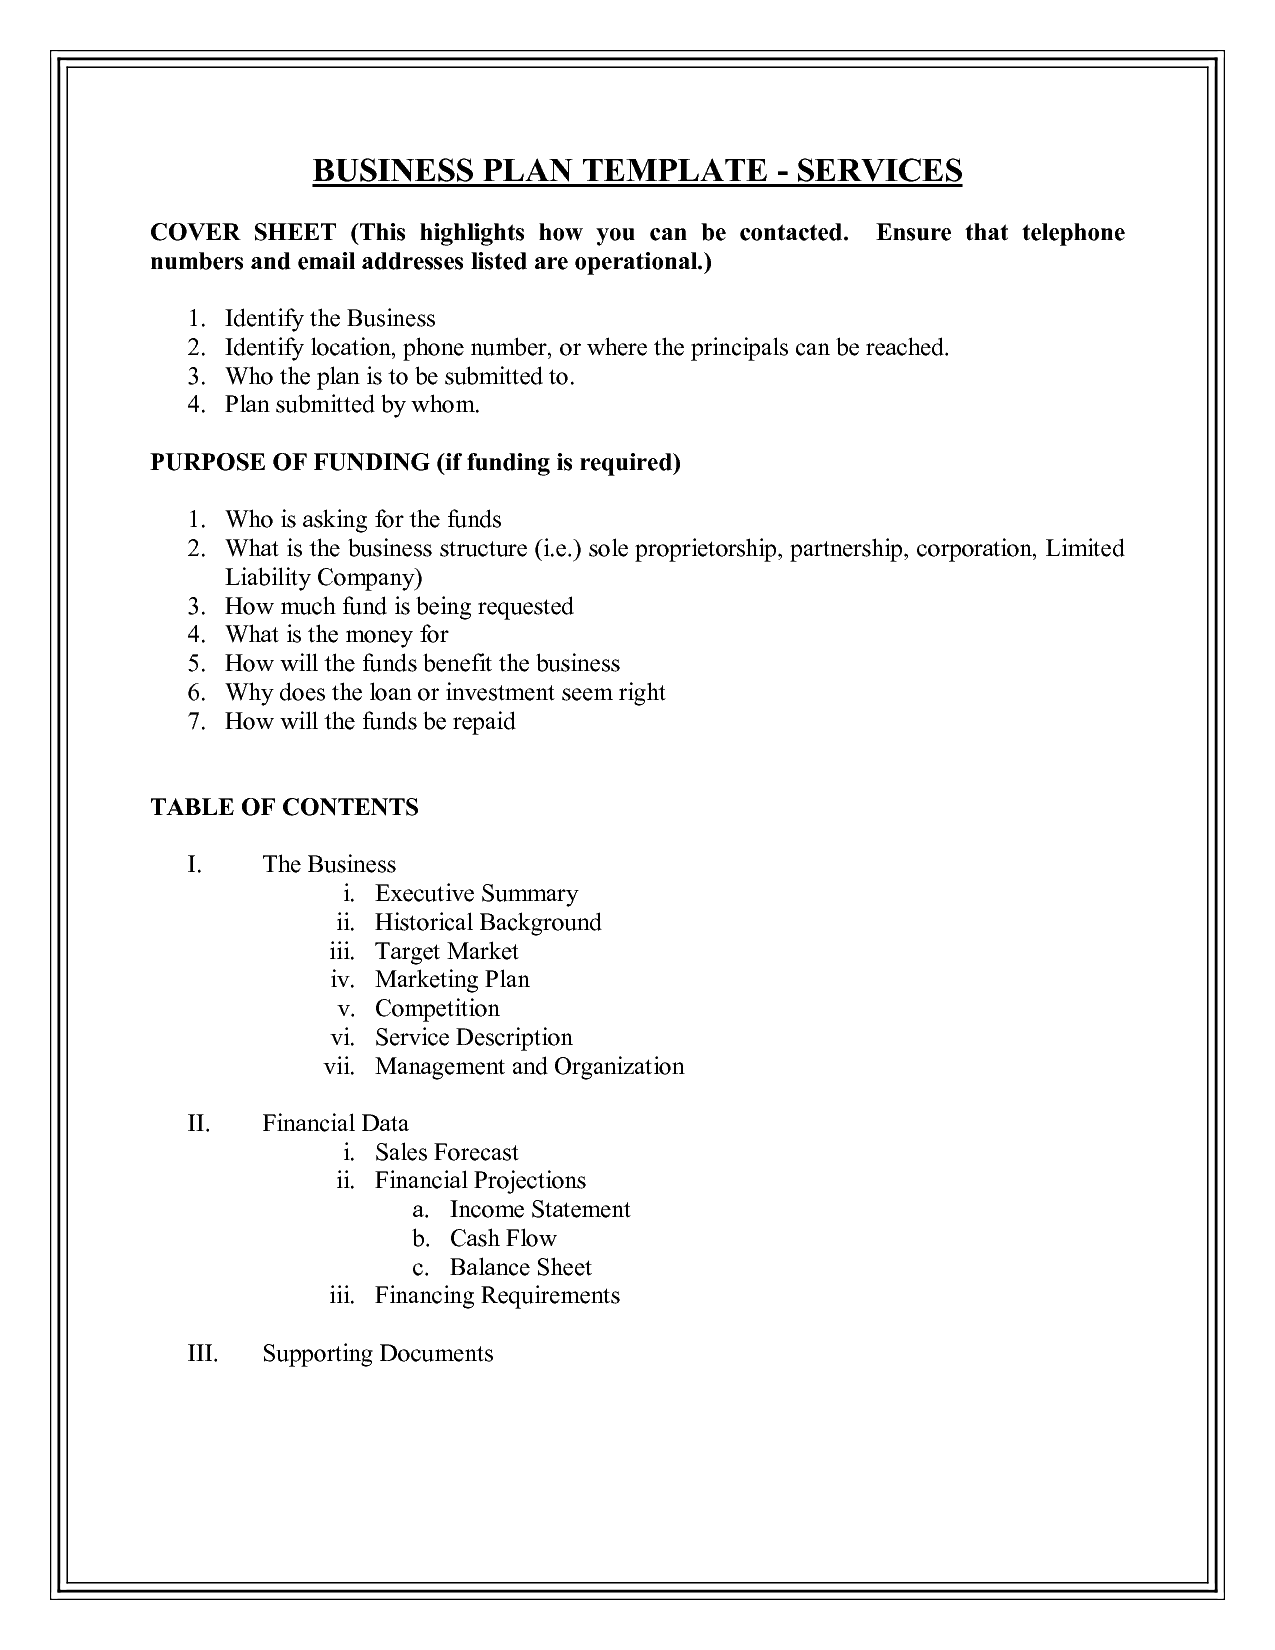 Free Business Plan Template | Pdf Small Business Plan Template